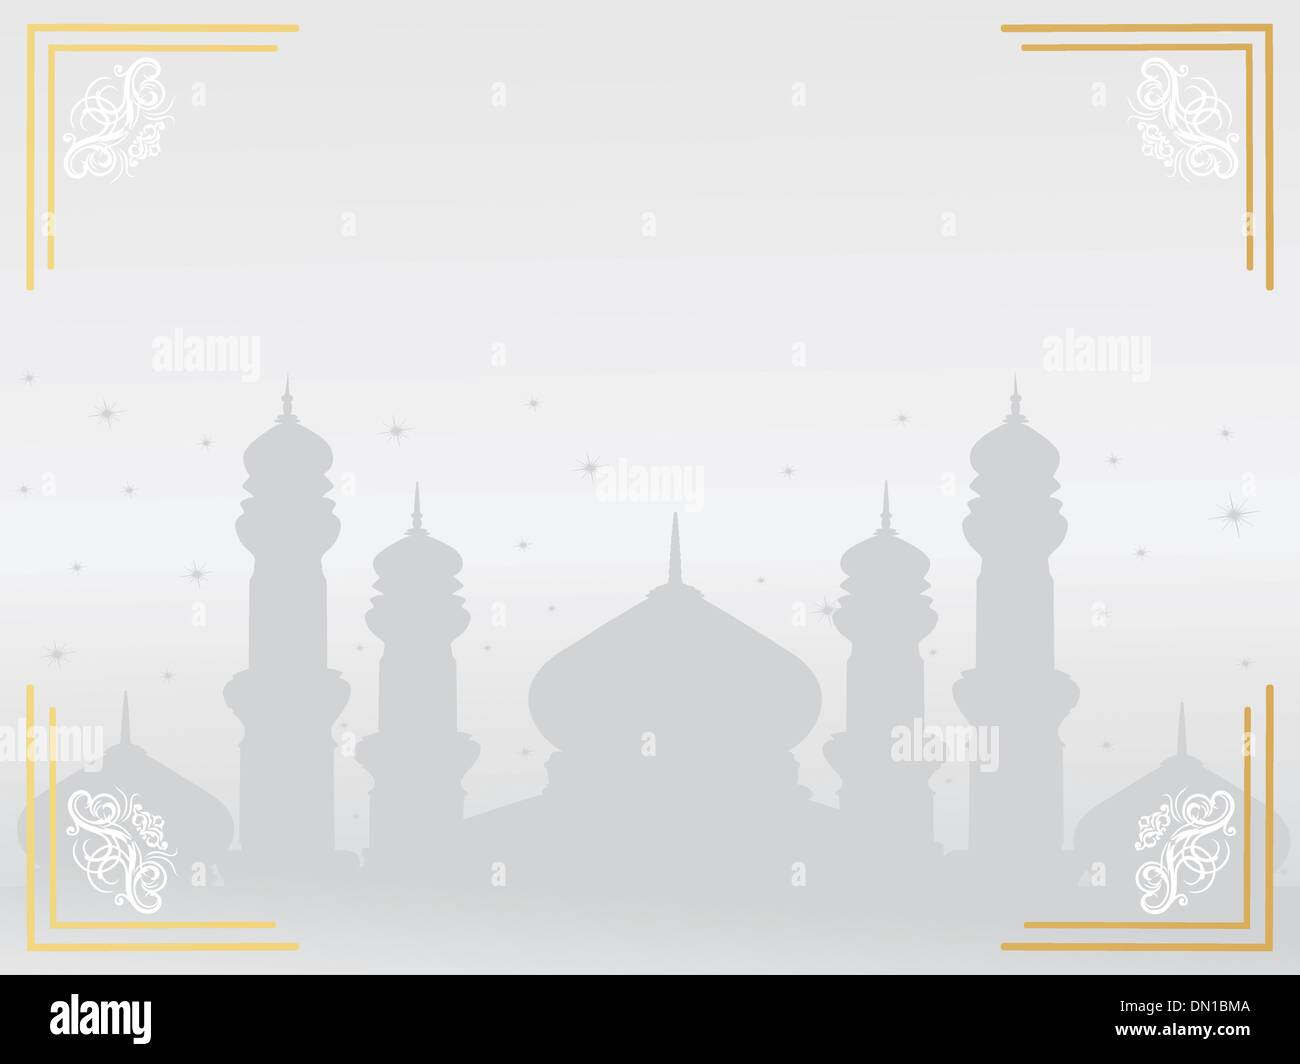 Download 51 Koleksi Background Islami Masjid Gratis Terbaru